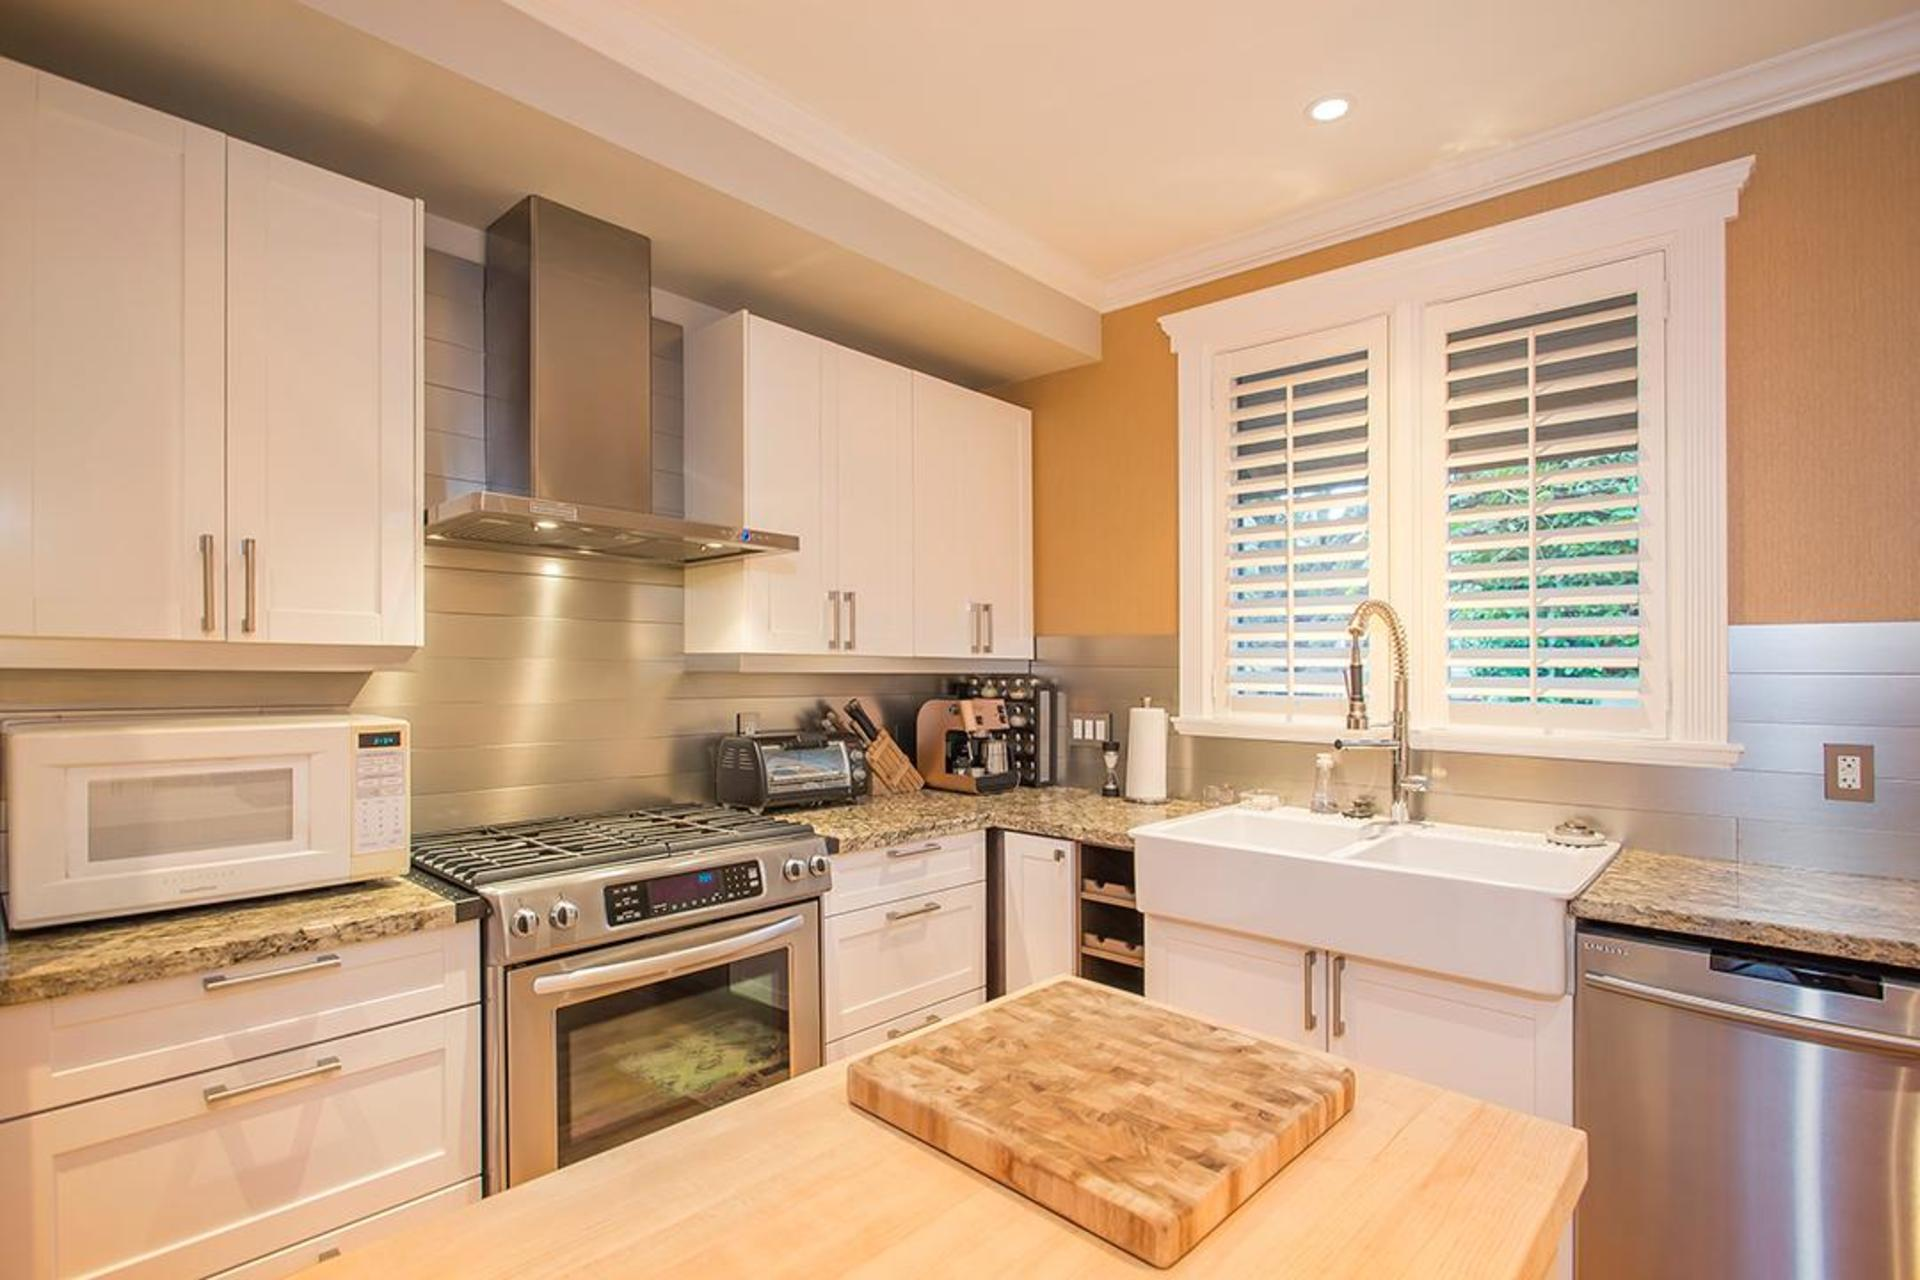 Kitchen at Address Upon Request, Point Grey, Vancouver West